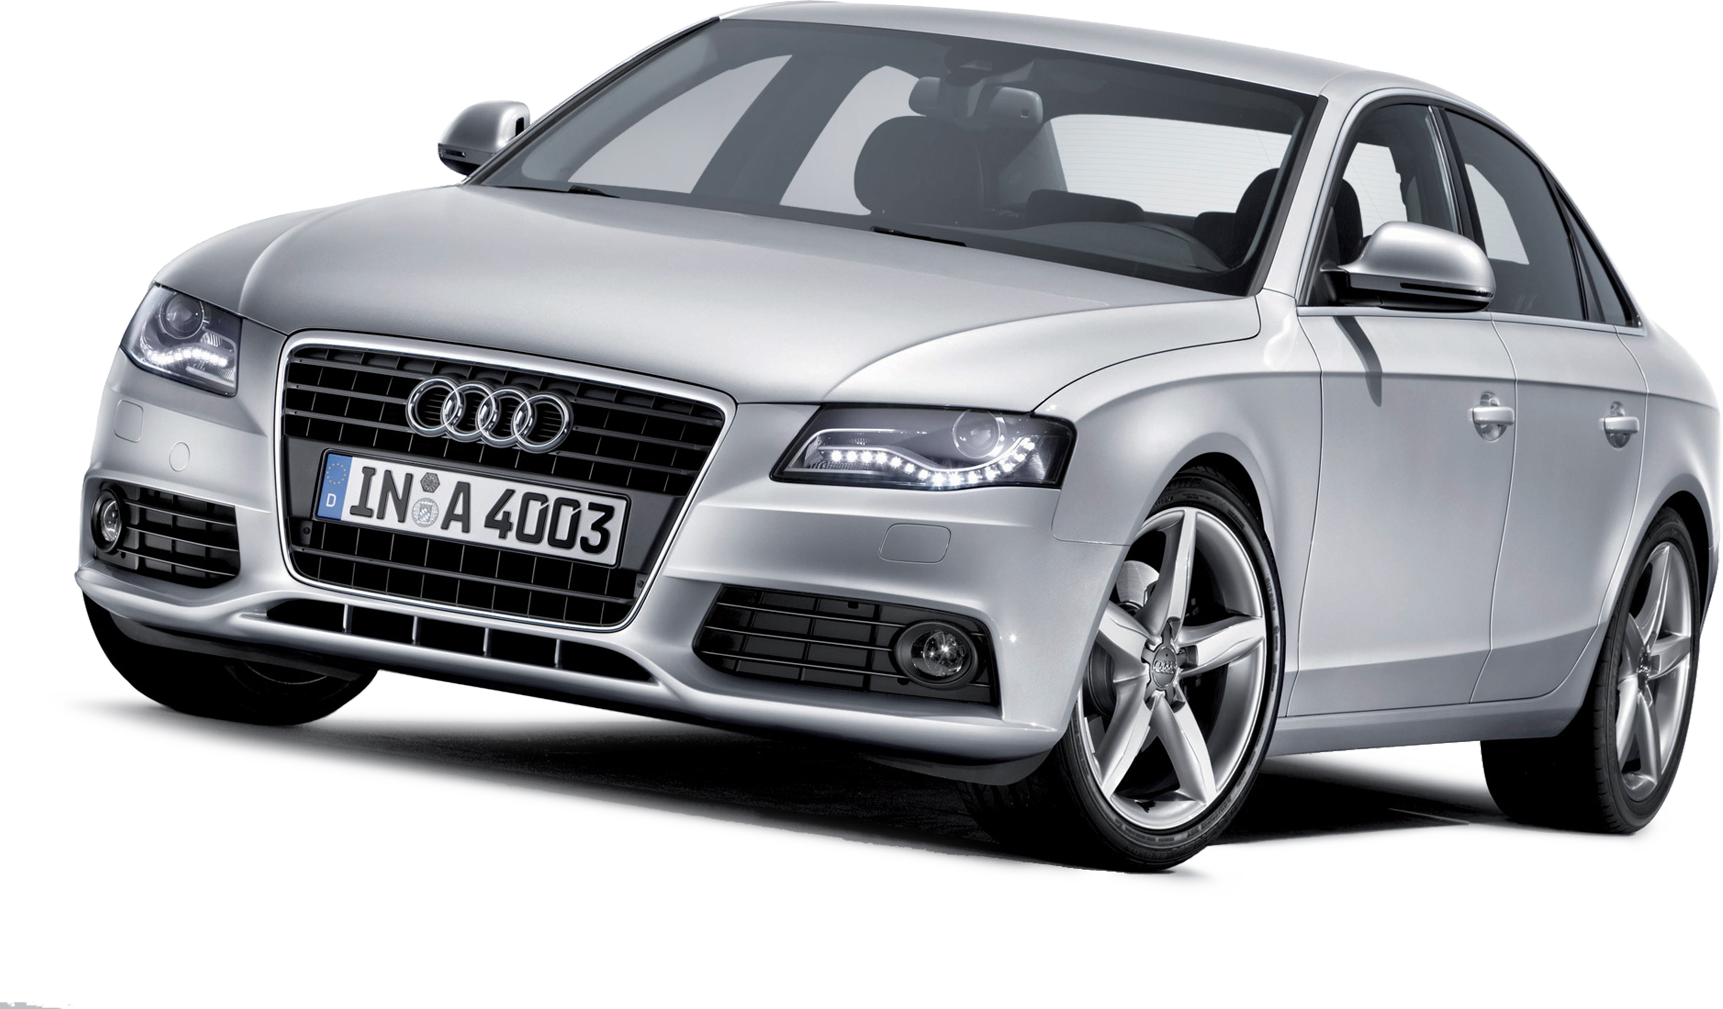 Car trunk clipart jpg transparent library Audi PNG Car Images, free transparent audi clipart images - Free ... jpg transparent library